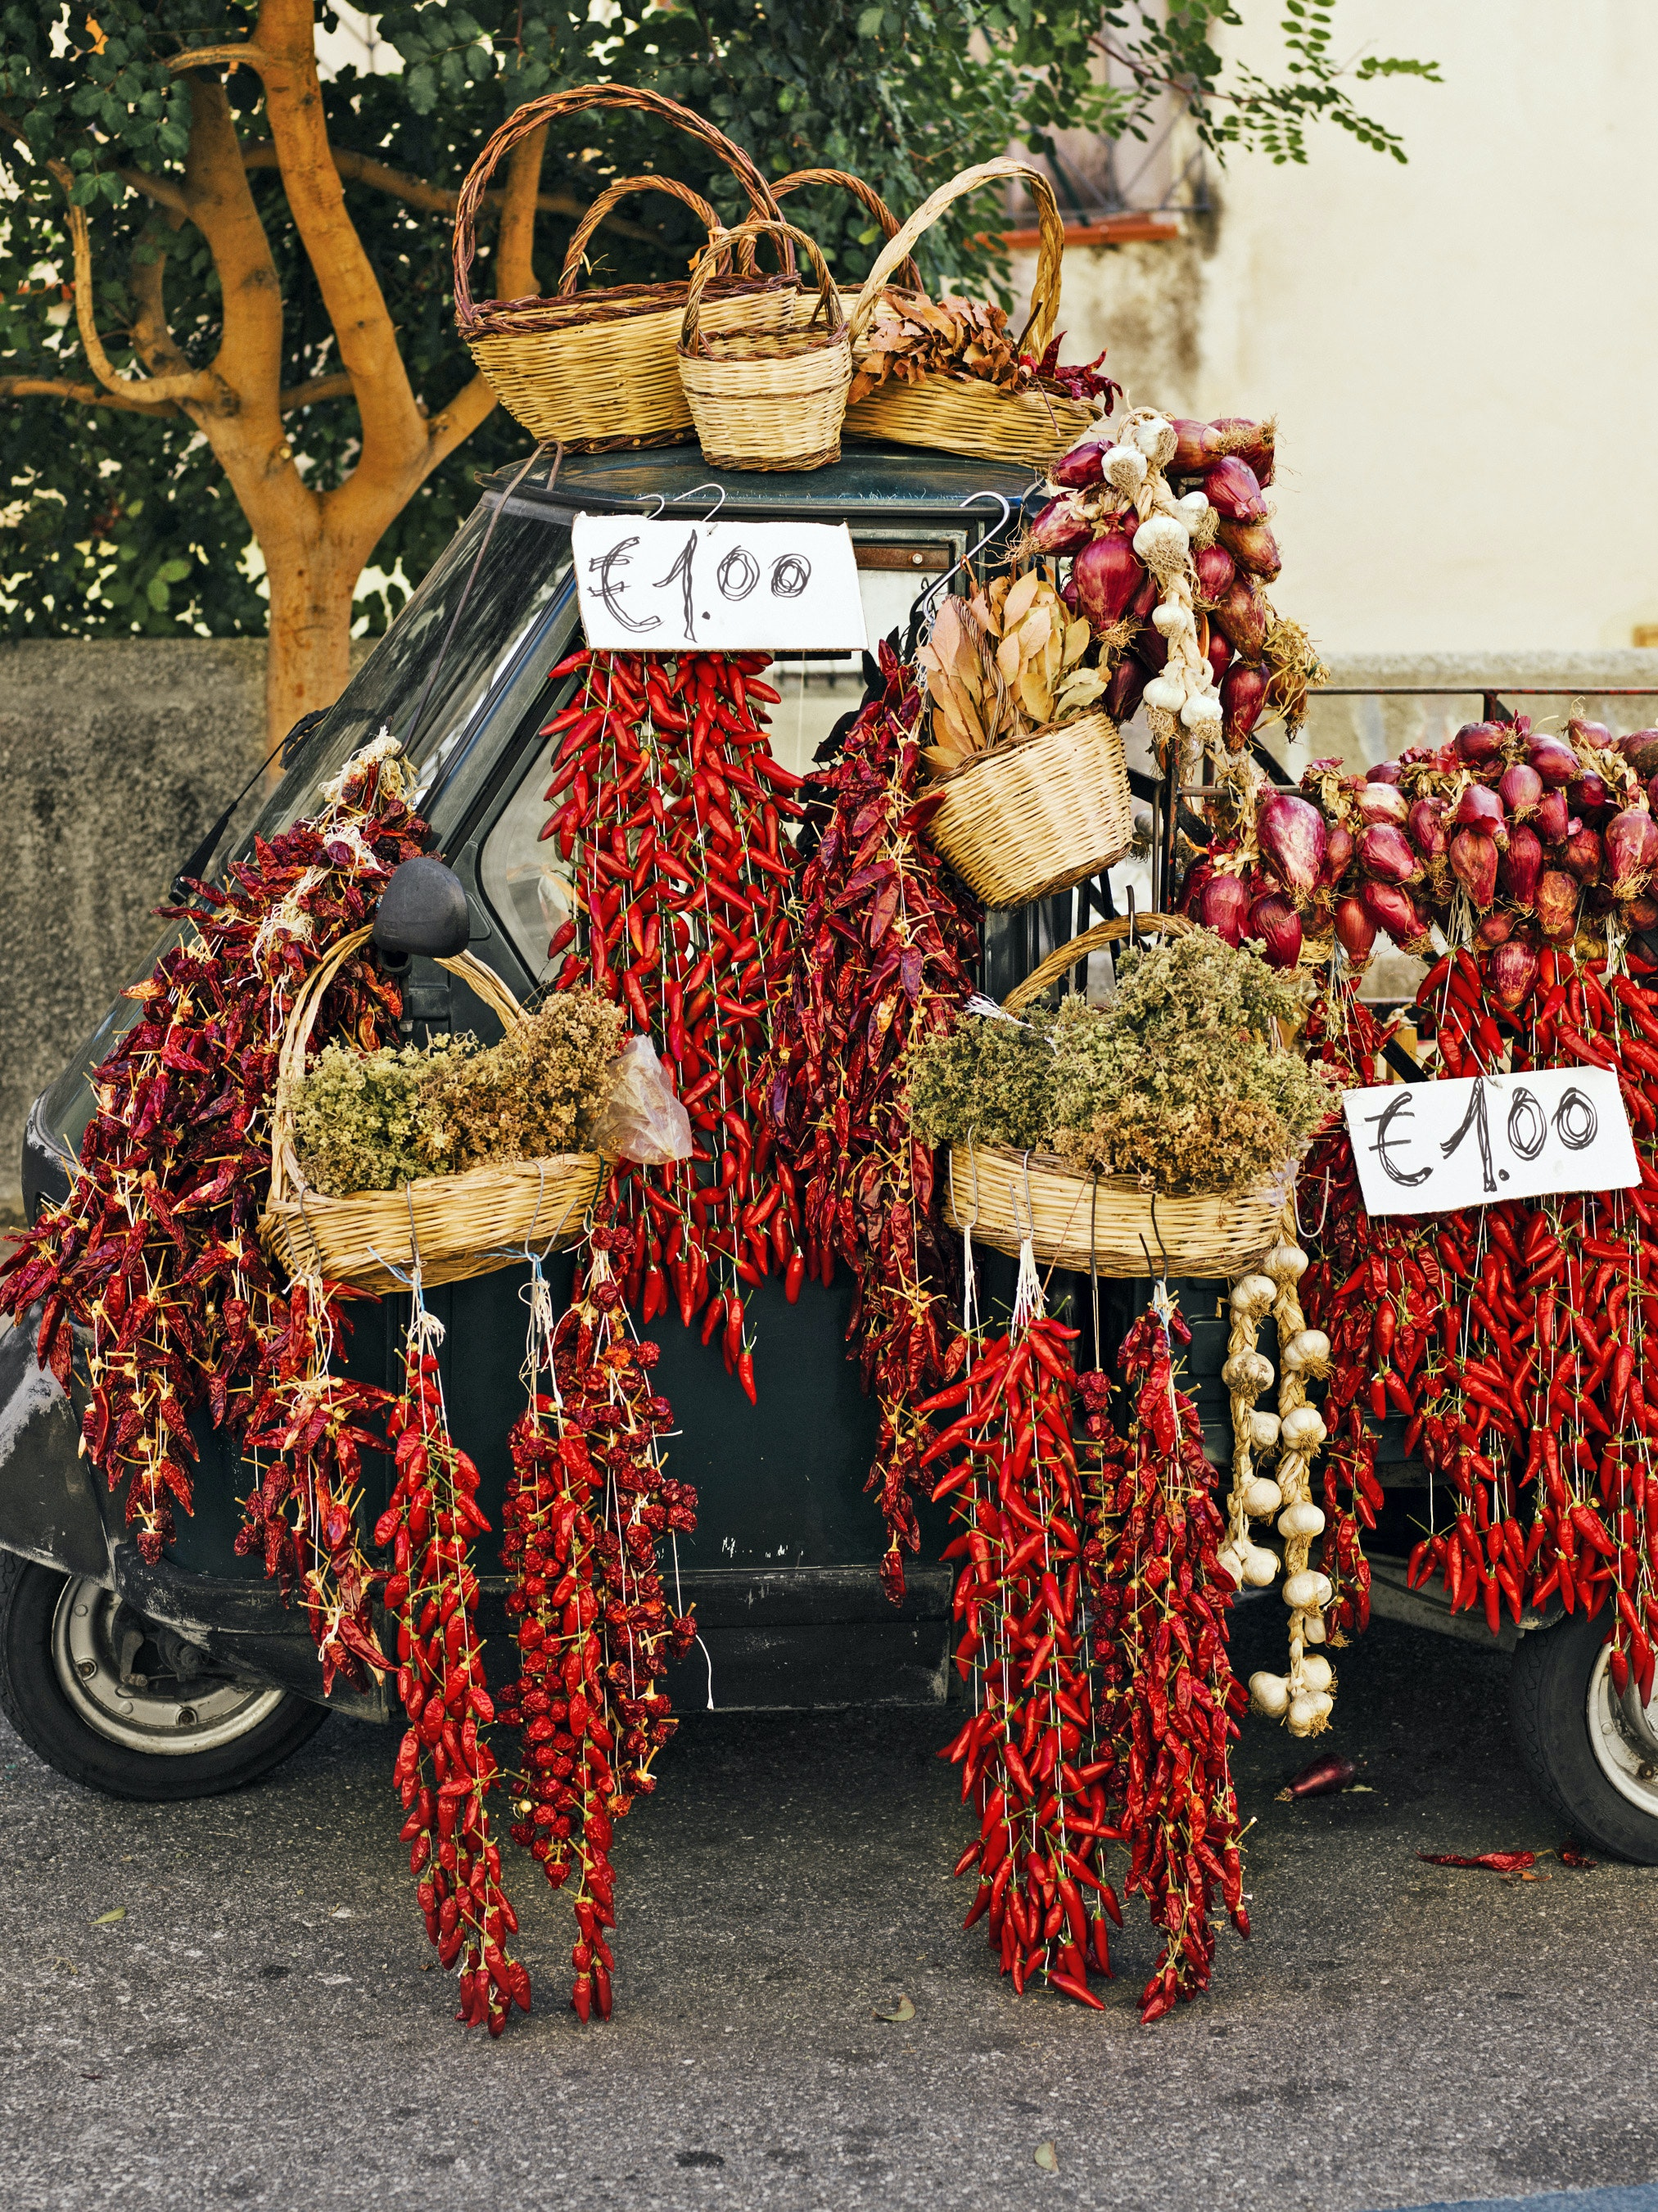 Calabrian red peppers are important ingredients for local cuisine.